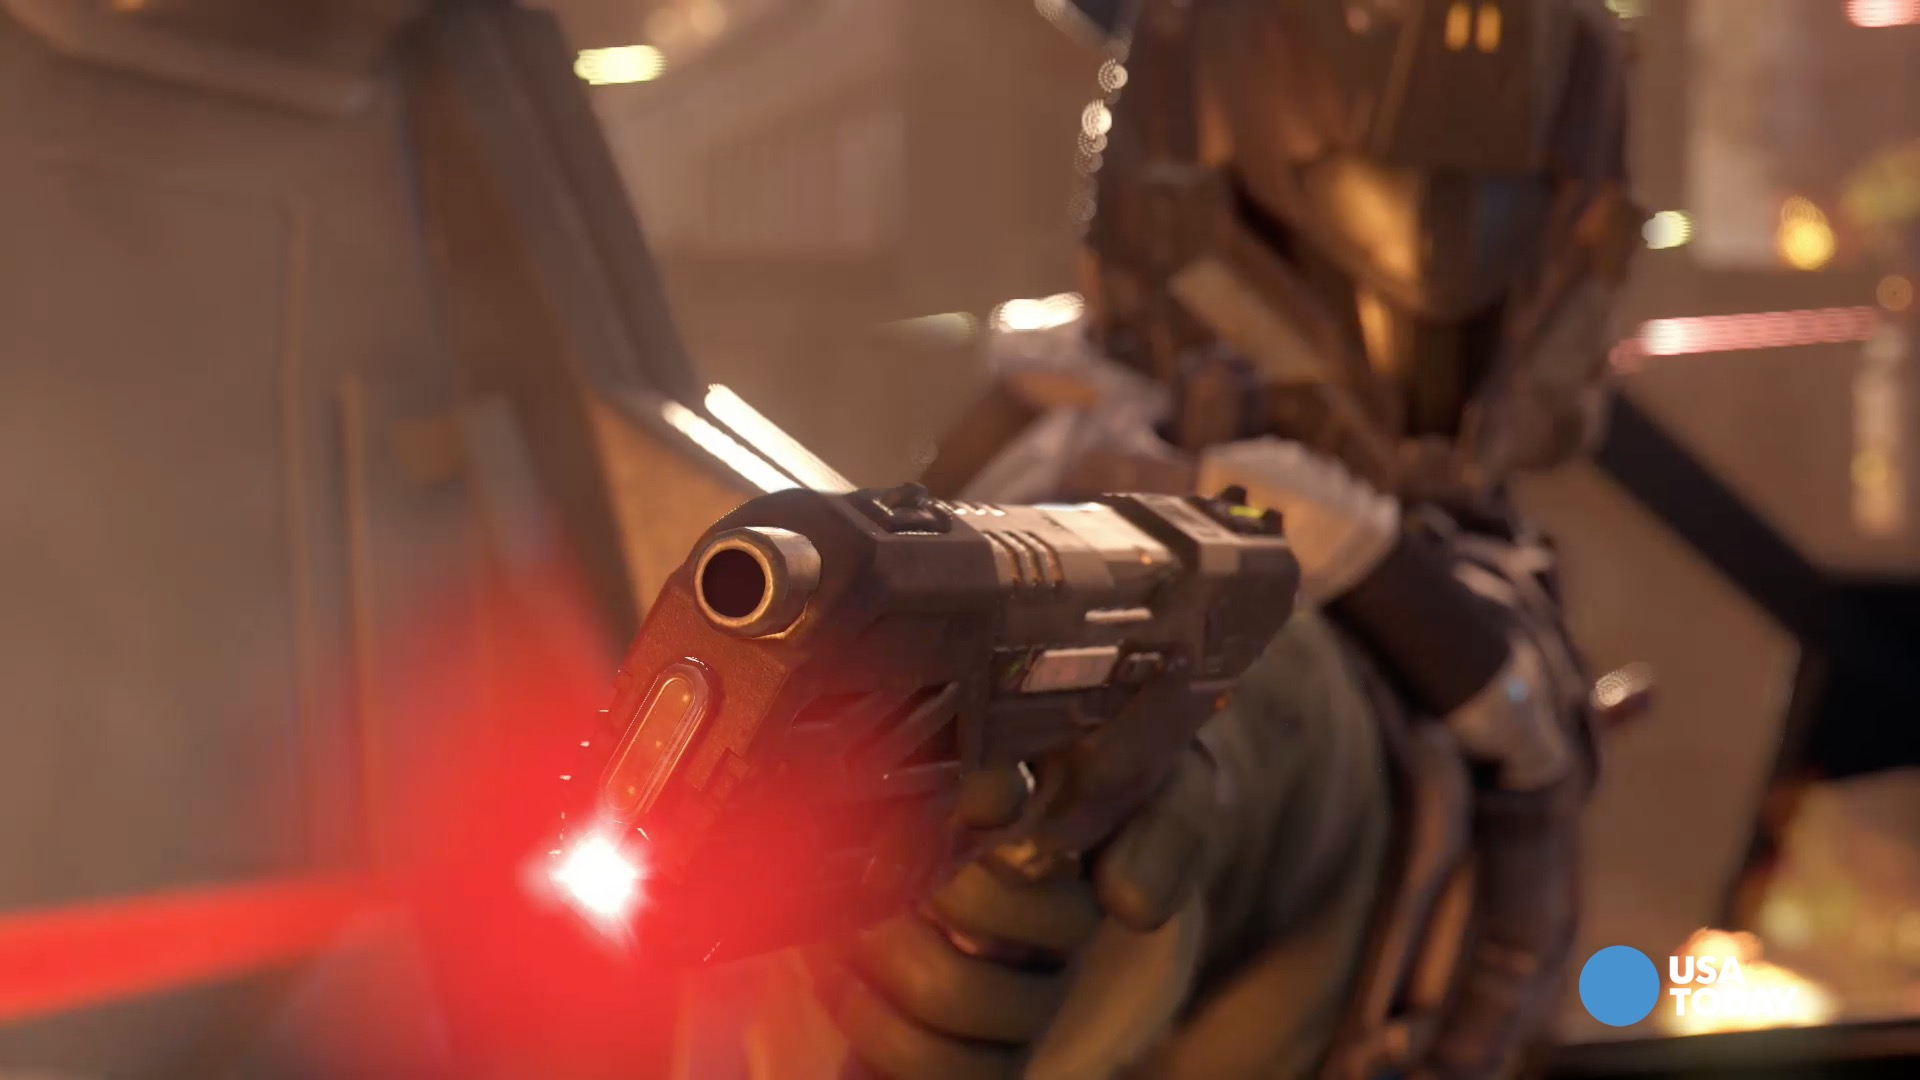 Call Of Duty Black Ops 3 Breaks Its Own Rules